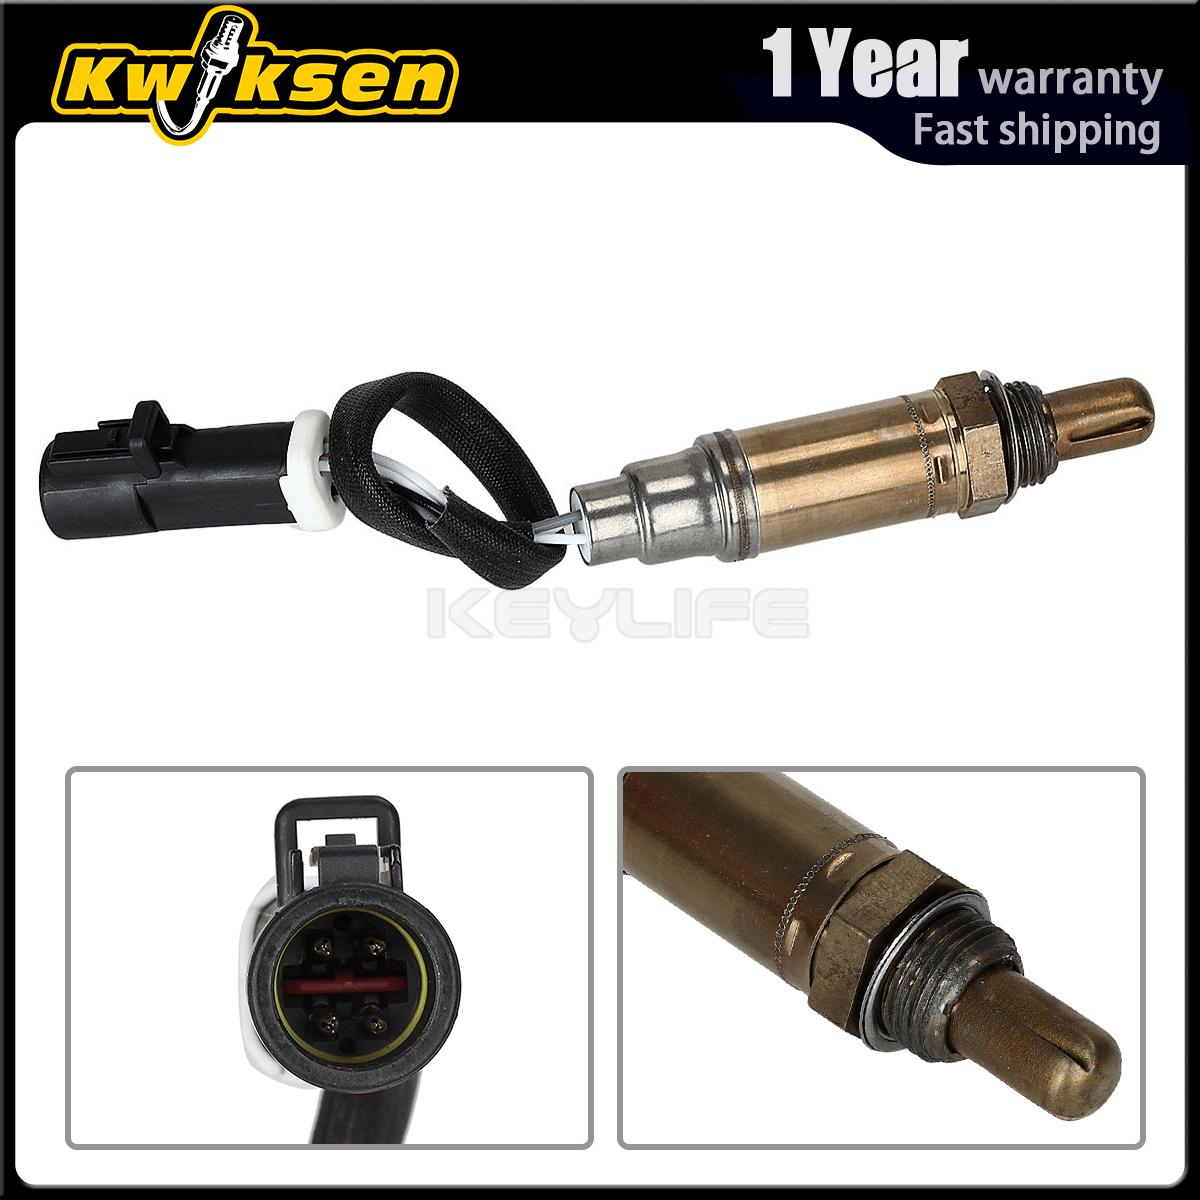 service manual  how to replace o2 sensor 1991 ford bronco  oxygen o2 sensor ford f150 ranger 1990 Lincoln Town Car 1996 Lincoln Continental